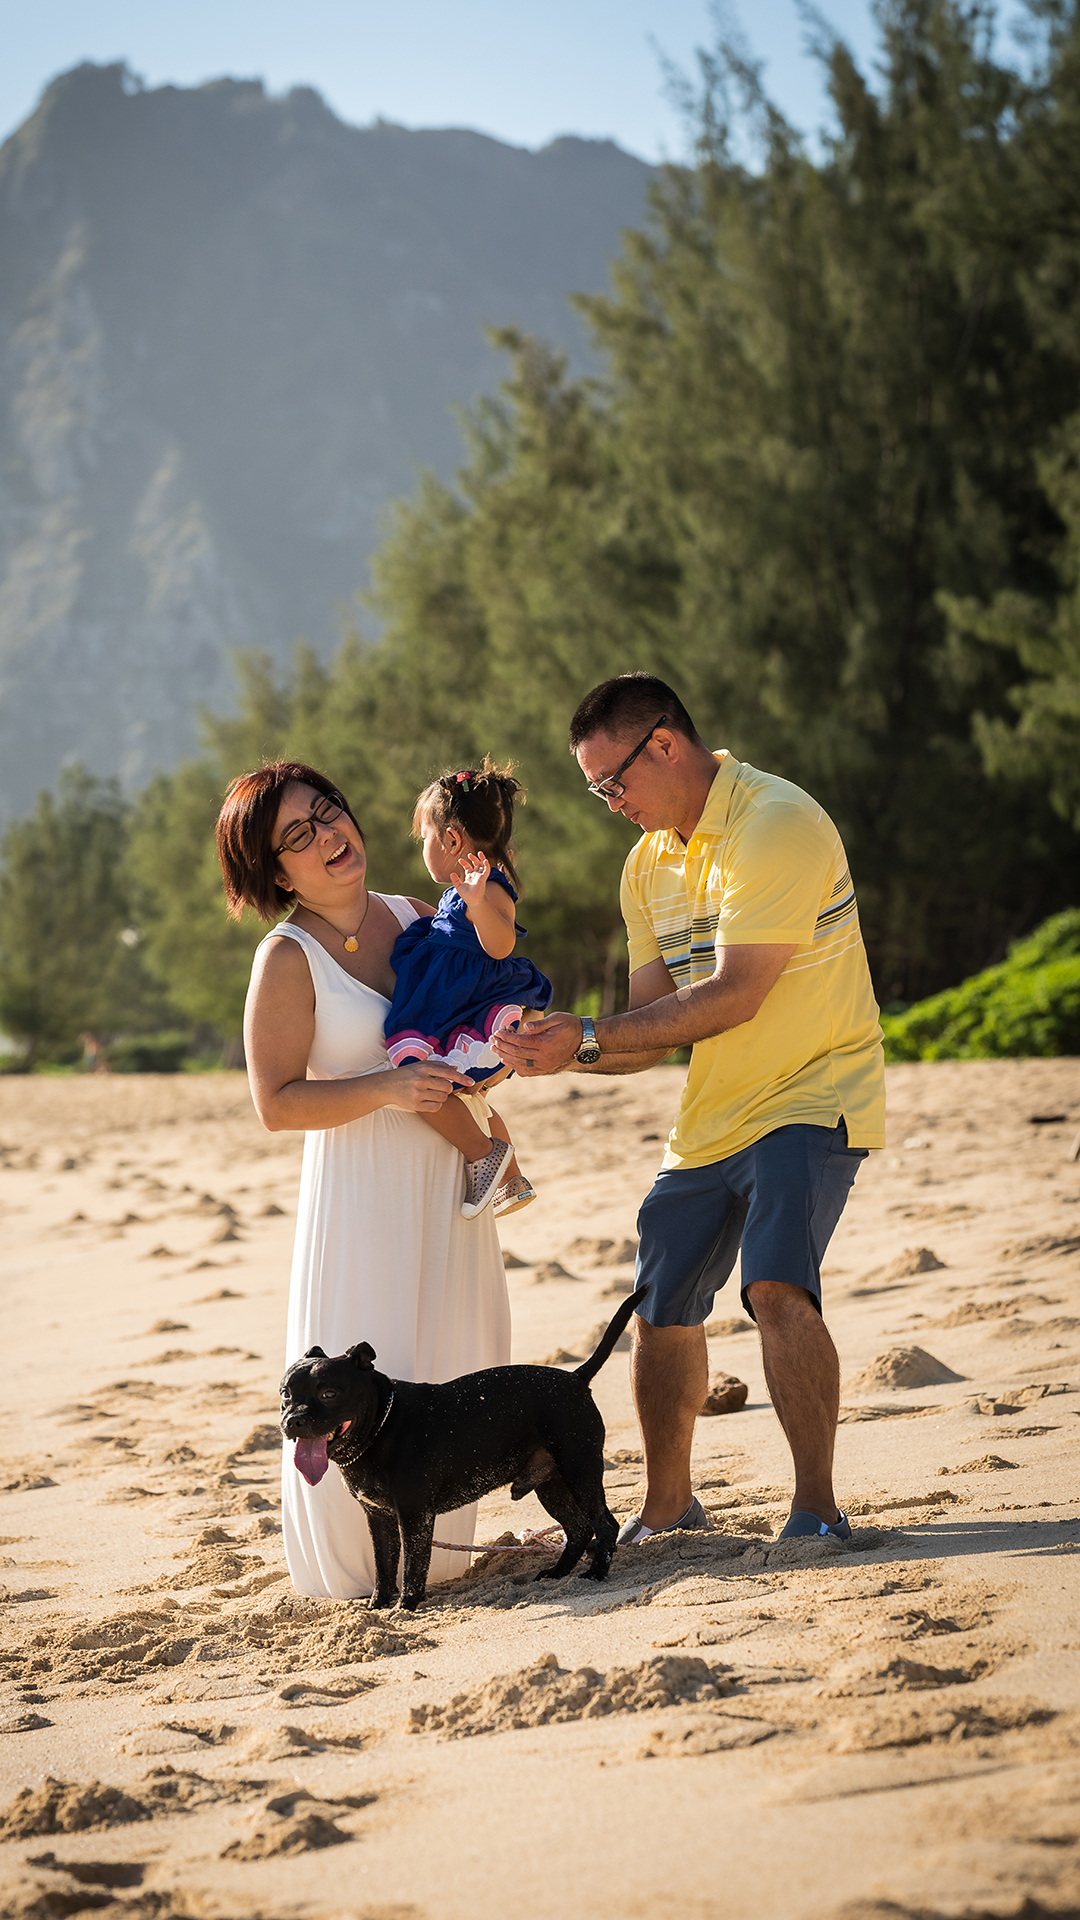 Family portraits at Sherwood forest in Waimanalo, Hawaii.